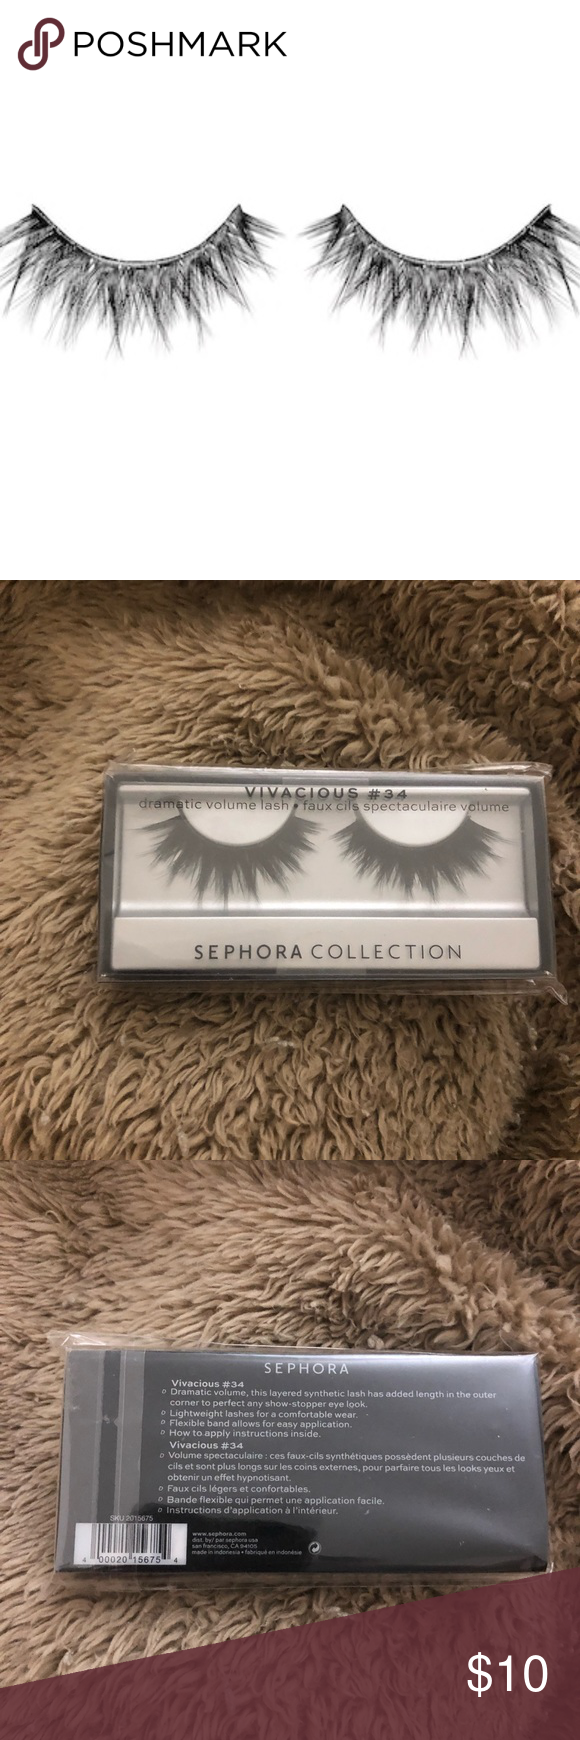 d96e1b6daf4 Sephora False Eyelashes Brand new, never used & in the box. Bundle for a  discount. No trades. Price is firm. Sephora Makeup False Eyelashes